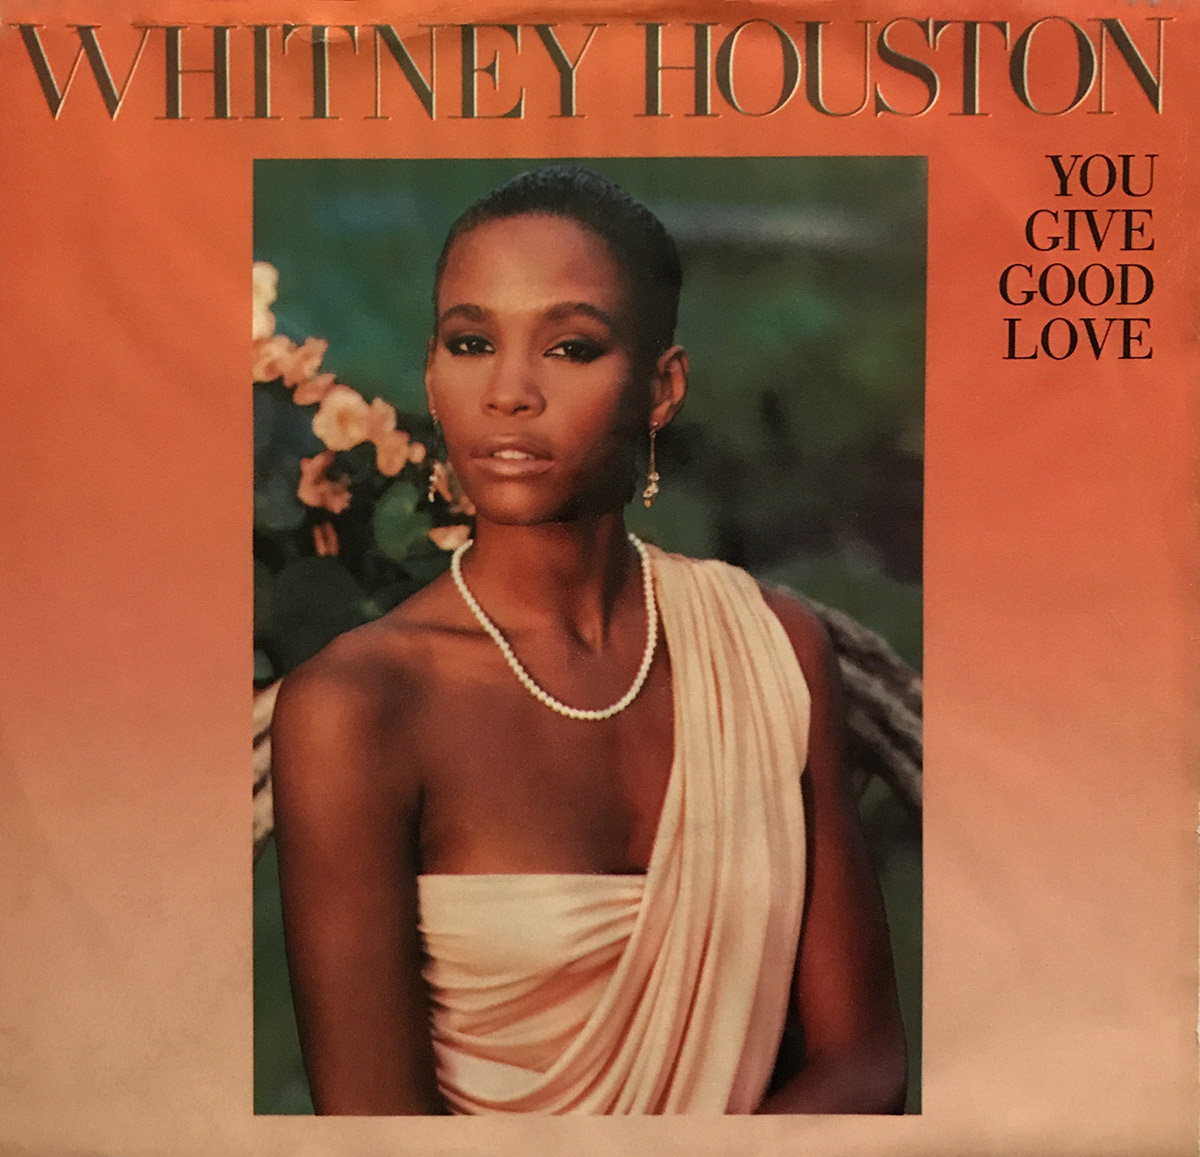 Whitney Houston - You Give Good Love U.S. 7-inch vinyl single front cover